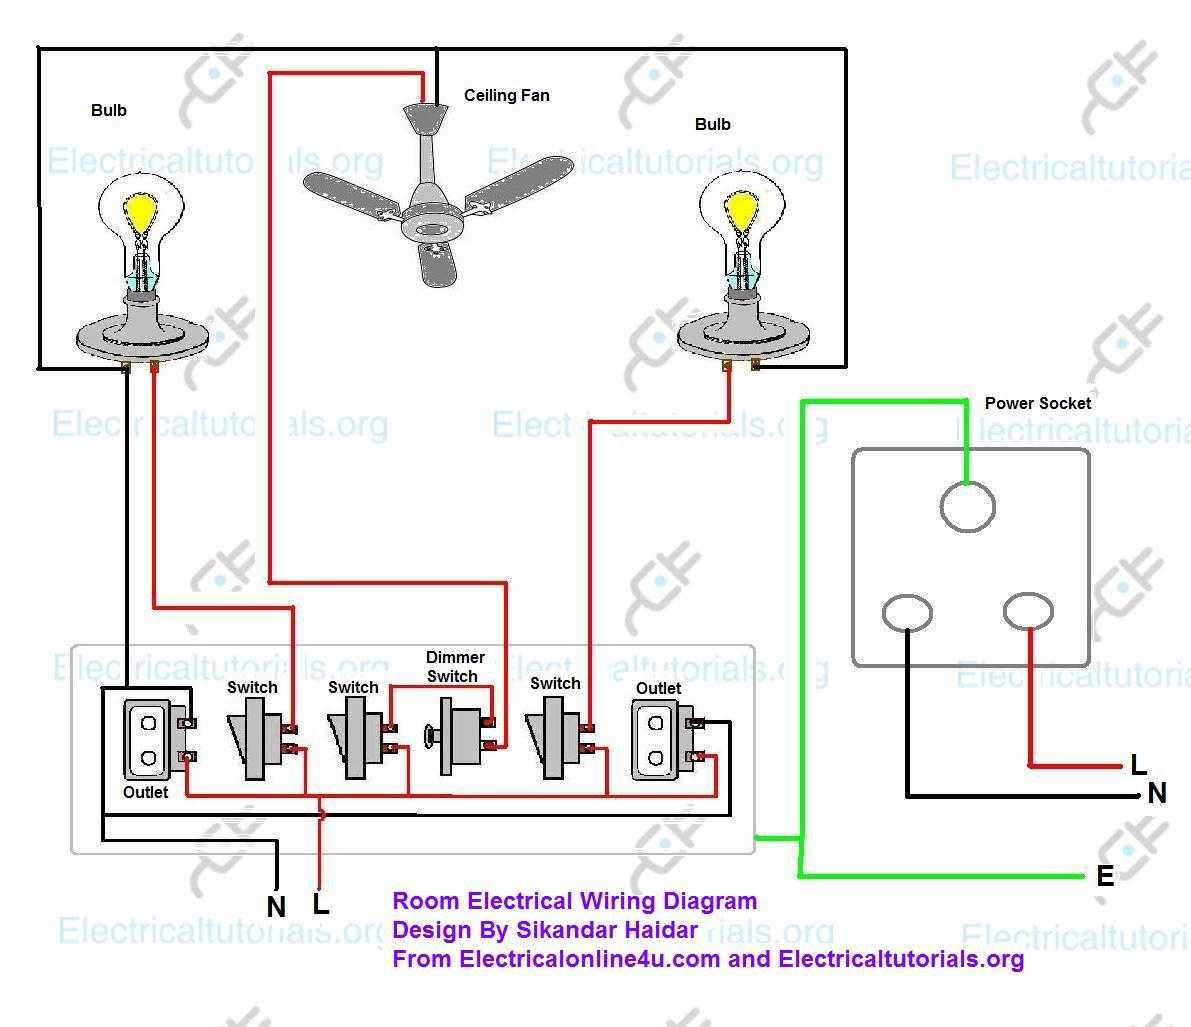 Wiring Regulations South Africa Free Download Diagrams Wire Th8320wf1029 Diagram House Standards In Rh Quickcav Co